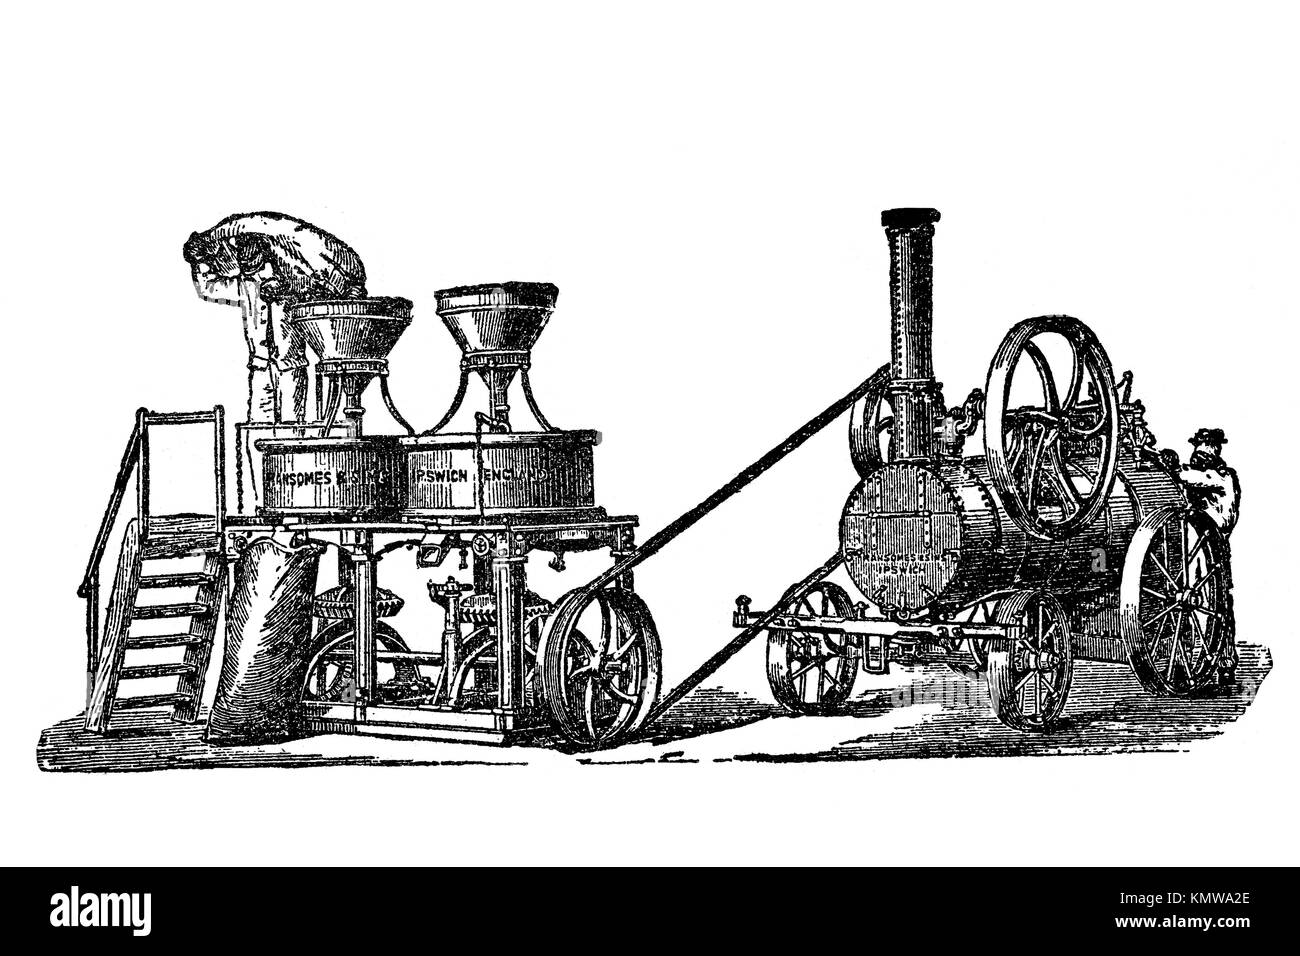 Stone mill powered by a steam engine. Old book illustration, 1900 - Stock Image